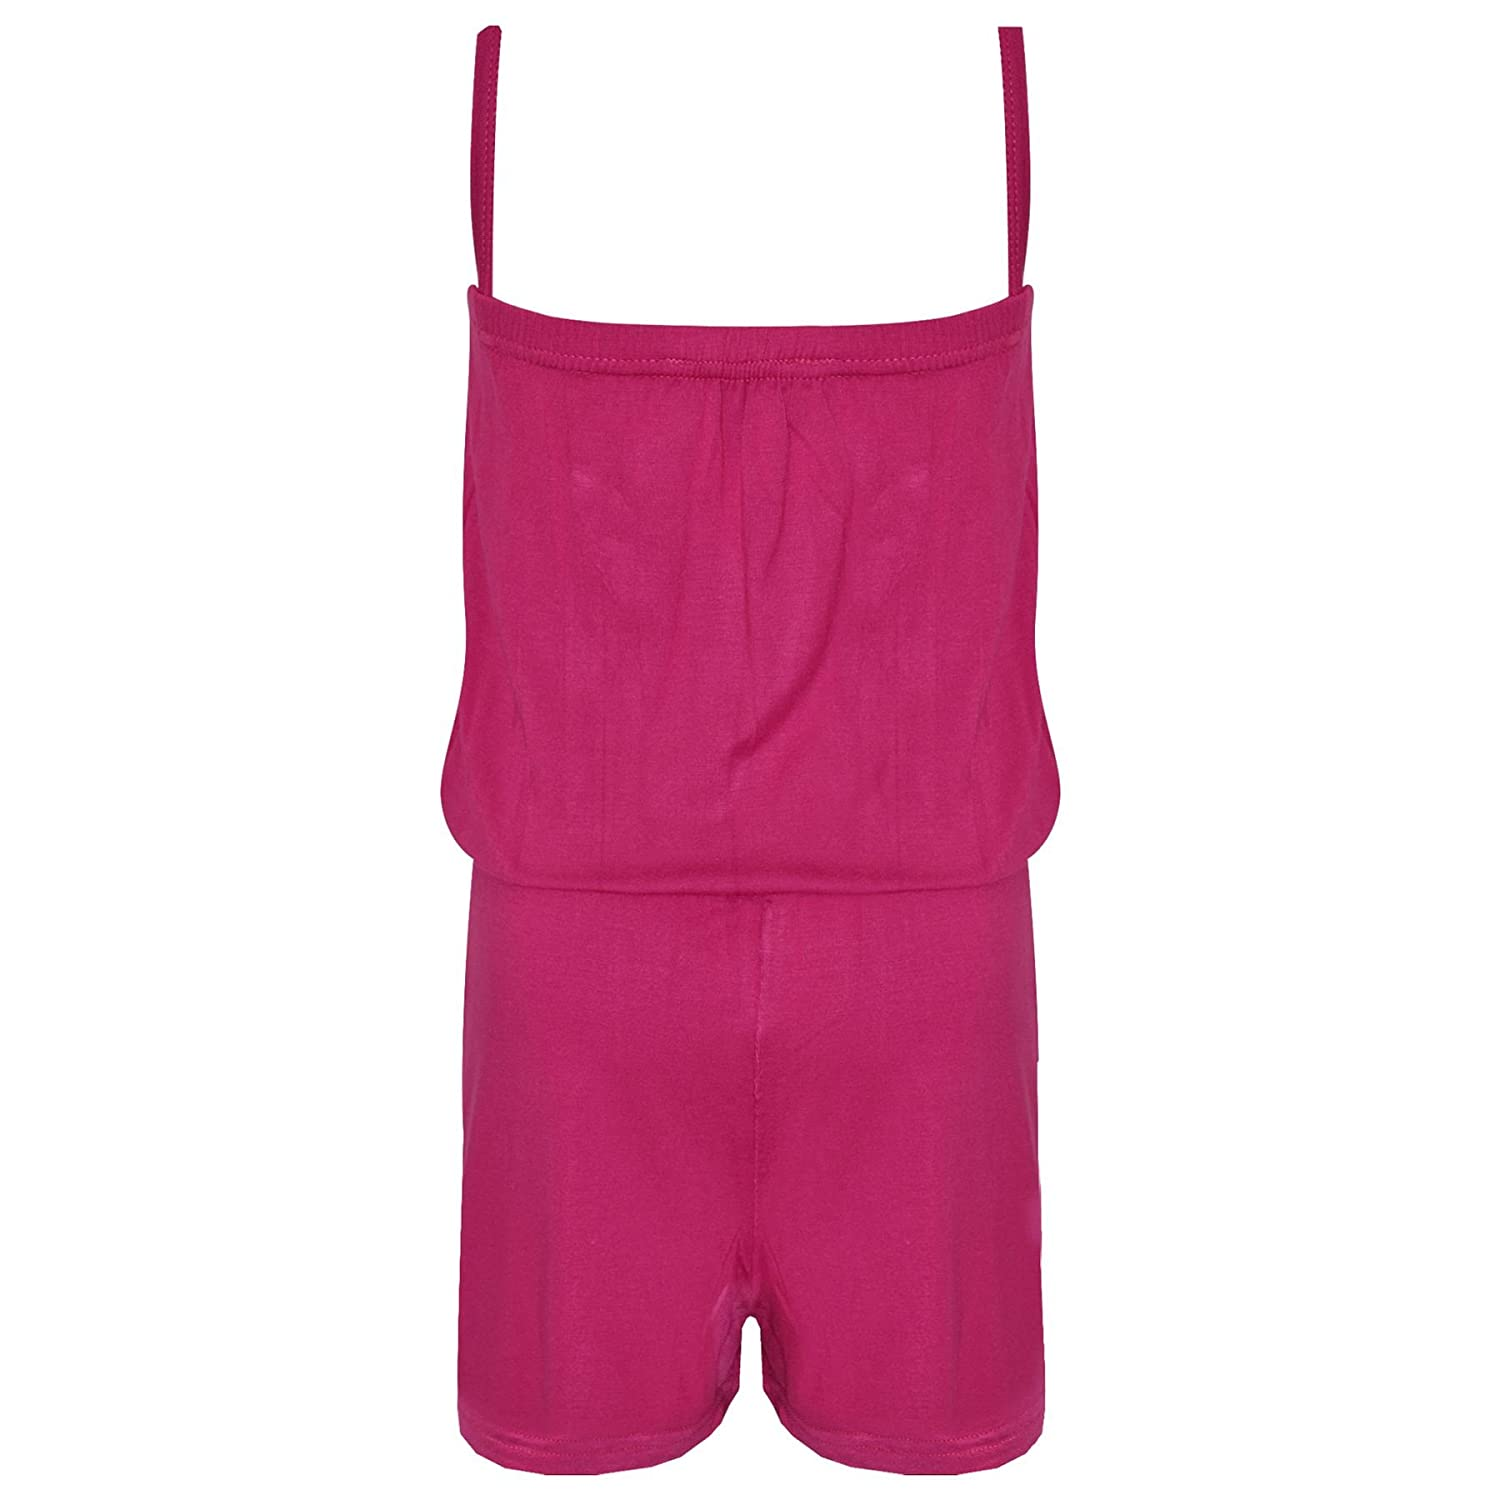 Girls Jumpsuits Kids Plain Color Trendy Playsuit All in One Jumpsuit 5-13 Years